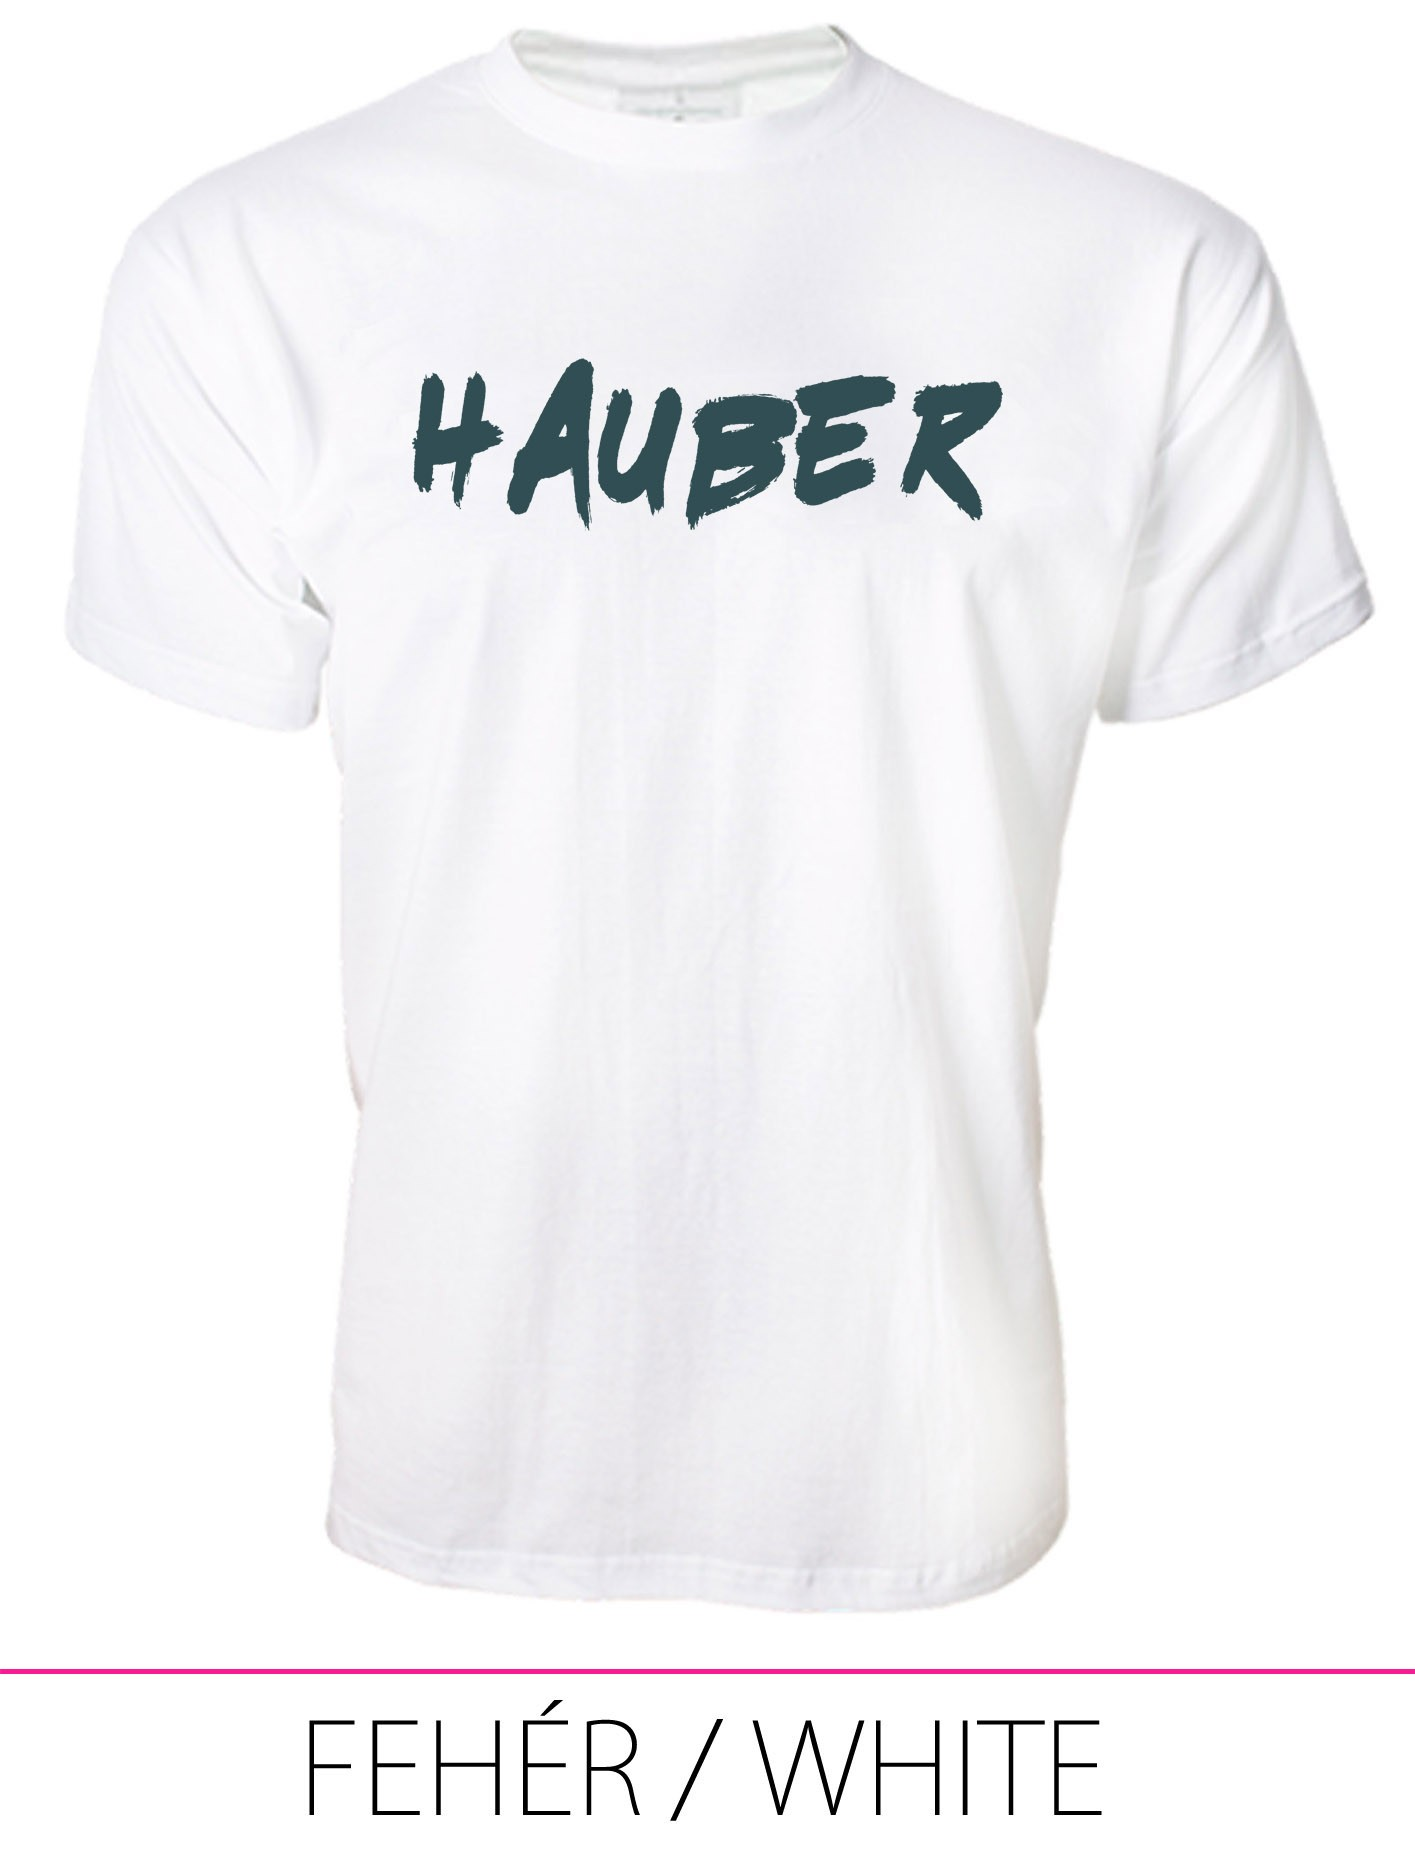 MEN PREMIUM CREW NECK T-SHIRT HAUBER WHITE